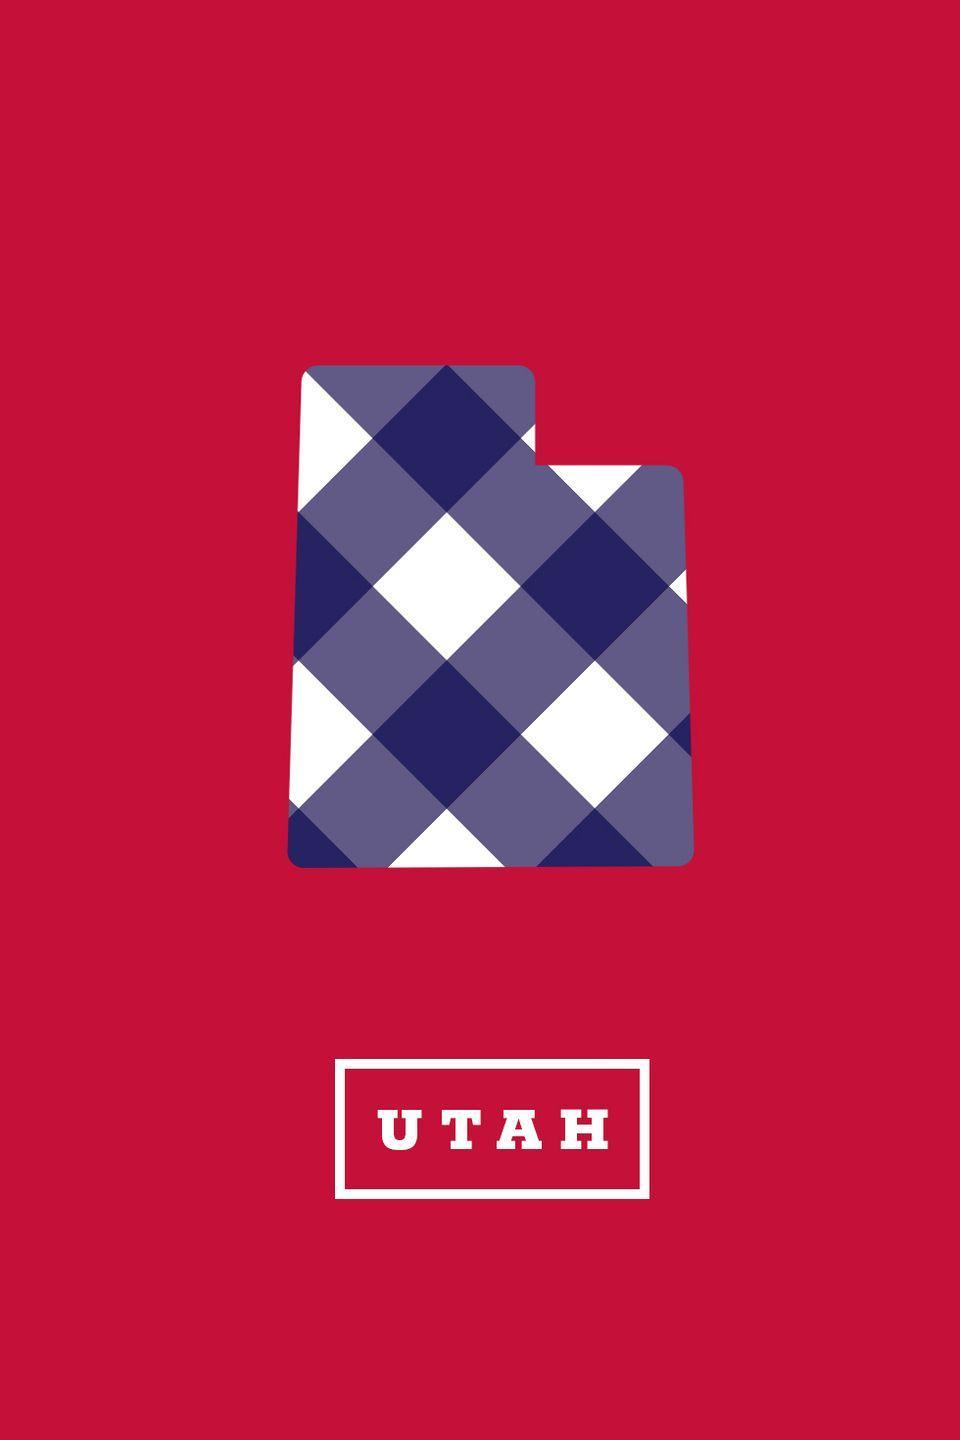 """<p>•It's red or blue on game day.</p><p>•You've made <a href=""""http://www.countryliving.com/food-drinks/a40938/cheesy-funeral-potatoes/"""" rel=""""nofollow noopener"""" target=""""_blank"""" data-ylk=""""slk:funeral potatoes"""" class=""""link rapid-noclick-resp"""">funeral potatoes</a> for a gathering (and it wasn't necessarily a <a href=""""http://www.countryliving.com/life/g4513/unspoken-funeral-etiquette-rules/"""" rel=""""nofollow noopener"""" target=""""_blank"""" data-ylk=""""slk:funeral"""" class=""""link rapid-noclick-resp"""">funeral</a>).</p><p>•You always go to the parade and see fireworks for <a href=""""https://en.wikipedia.org/wiki/Pioneer_Day_(Utah)"""" rel=""""nofollow noopener"""" target=""""_blank"""" data-ylk=""""slk:Pioneer Day"""" class=""""link rapid-noclick-resp"""">Pioneer Day</a>.</p>"""